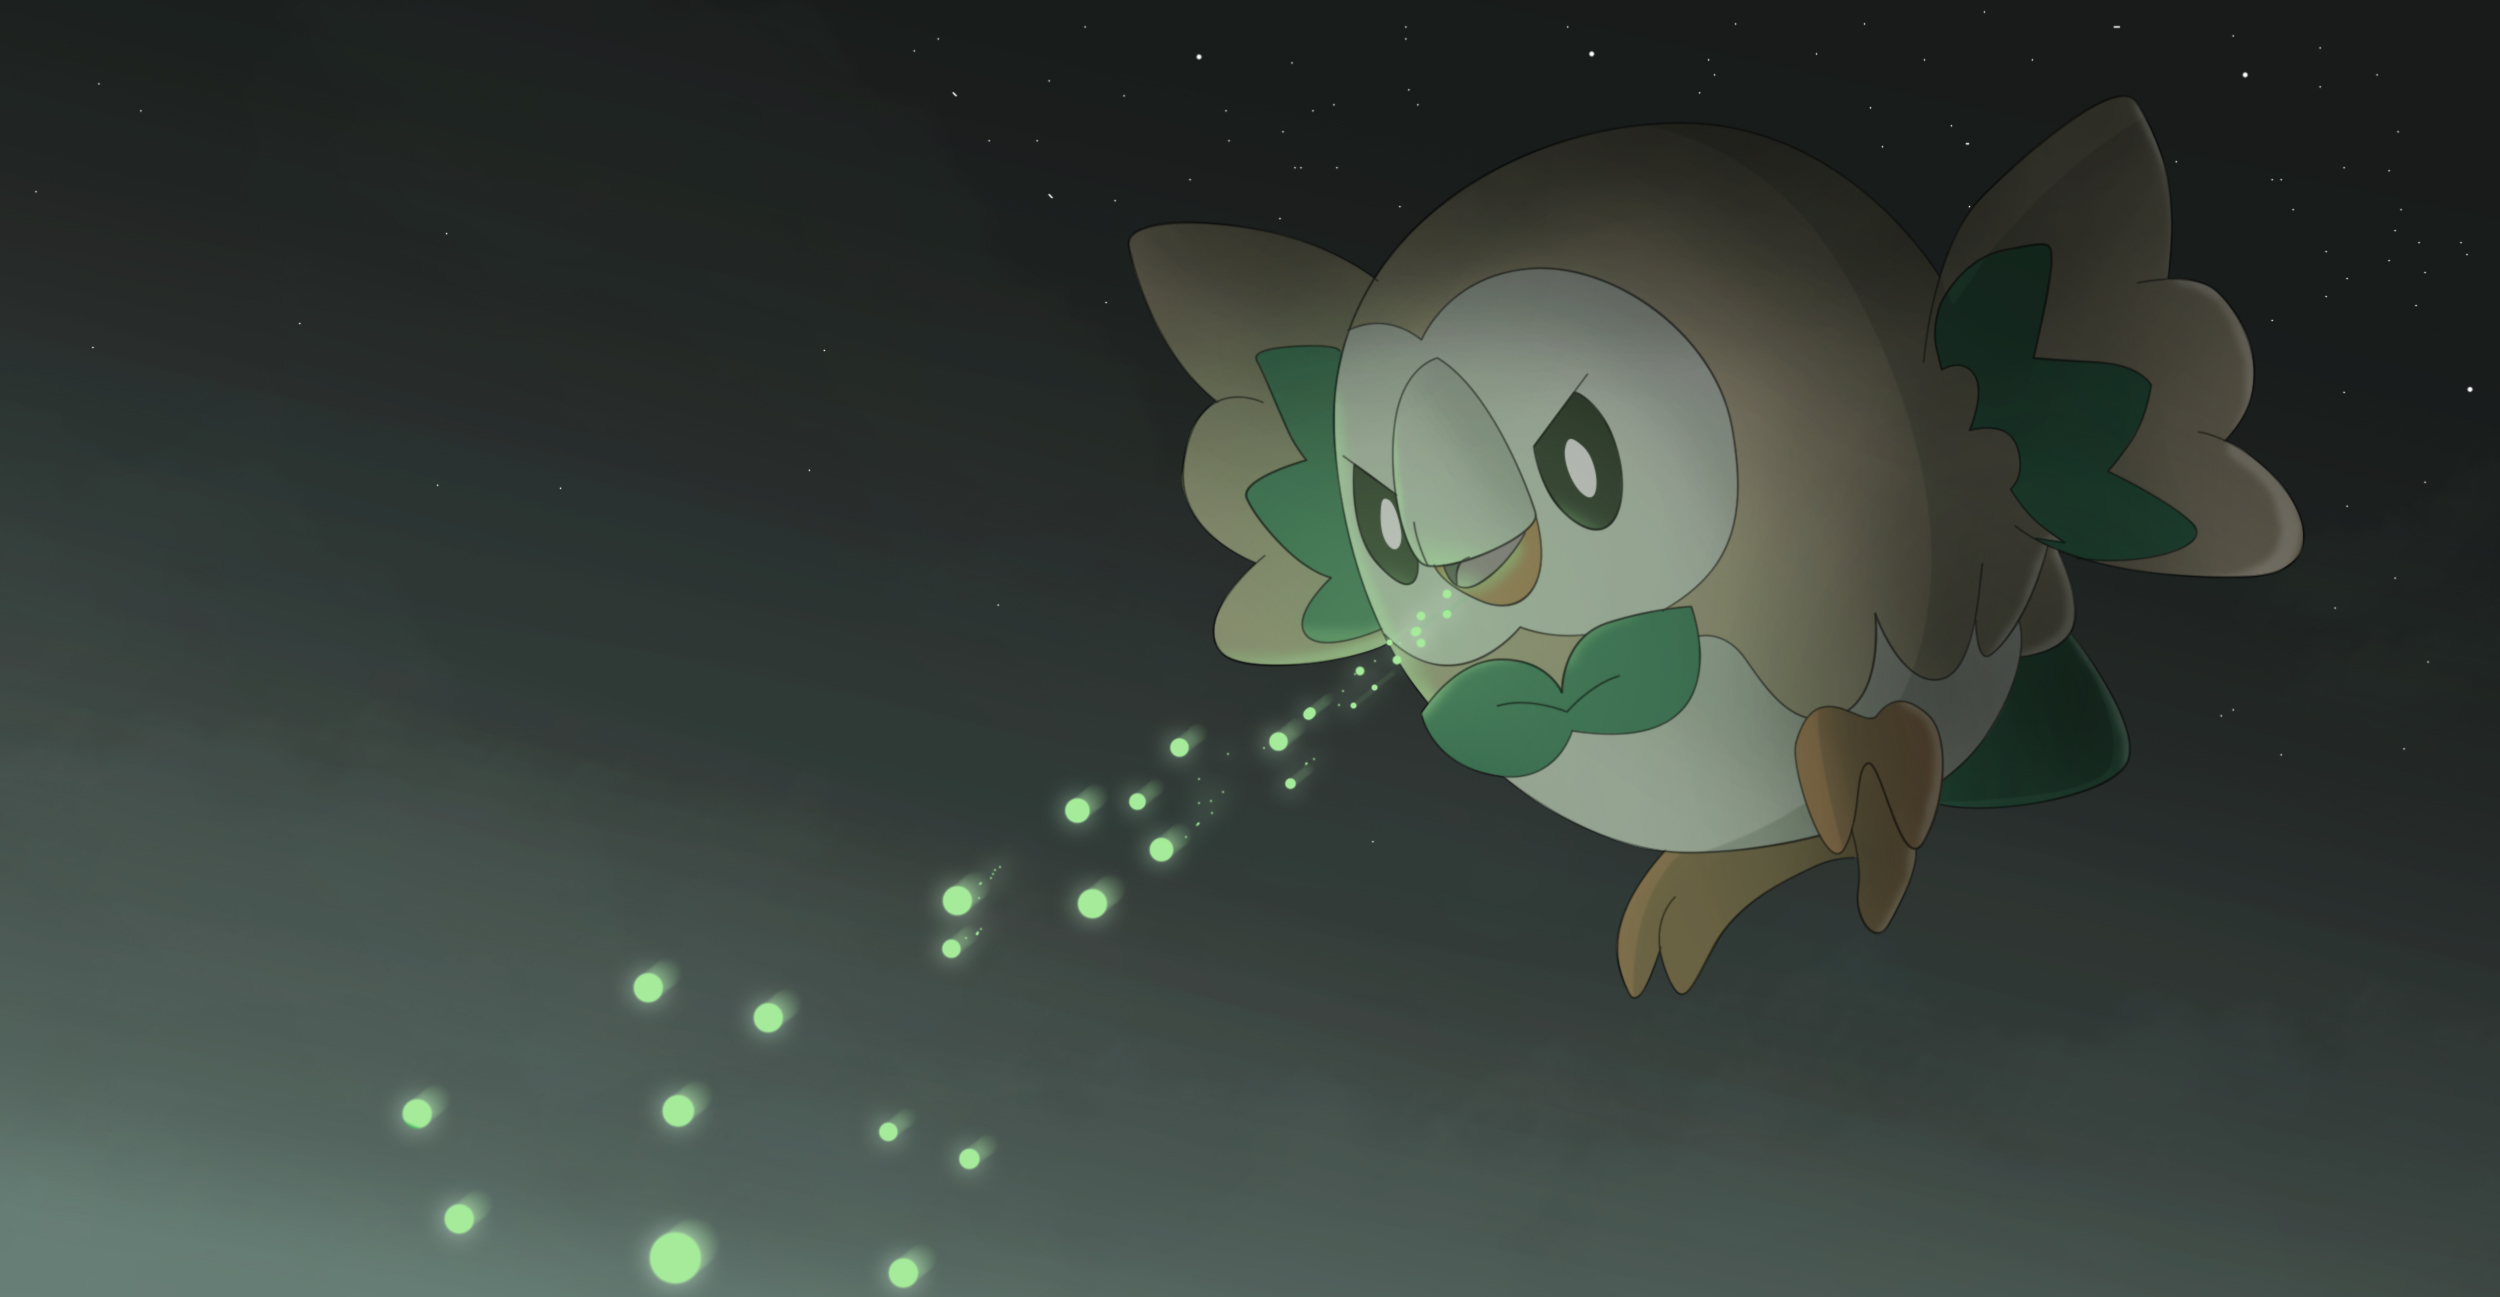 Pokemon Sun And Moon Wallpaper: Rowlet HD Wallpaper